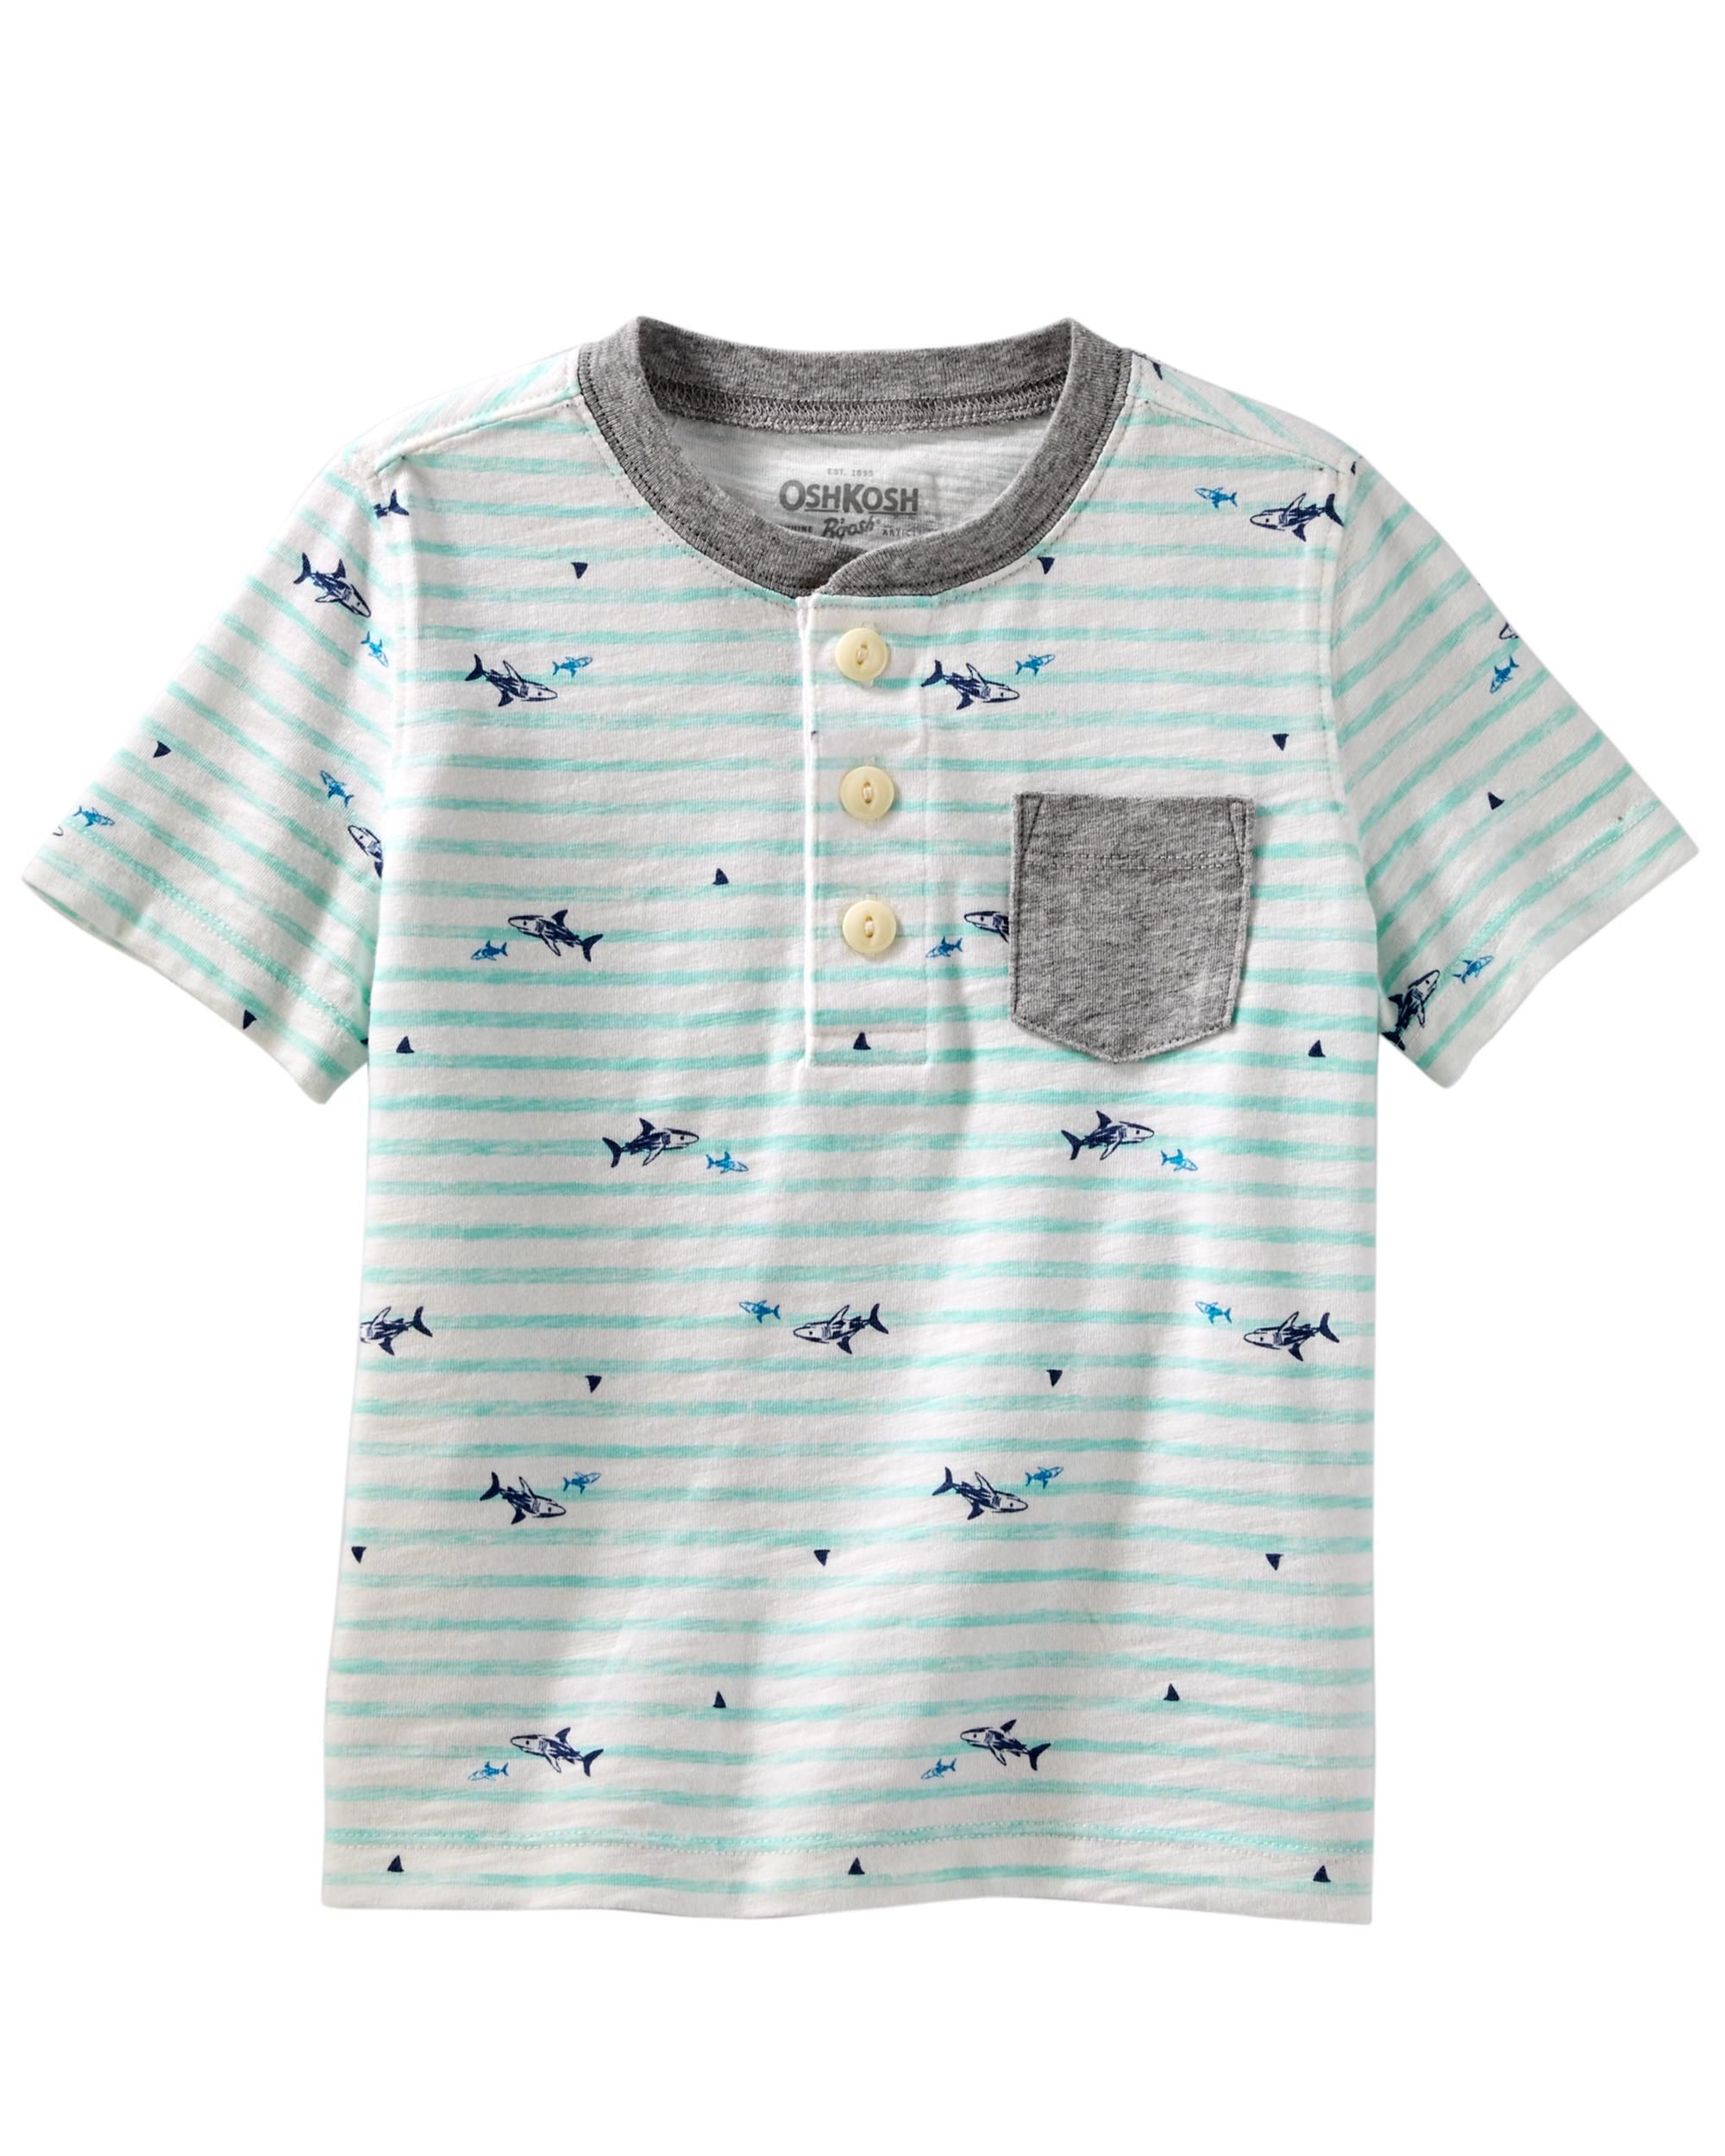 3203caf66 Toddler Boy Shark Jersey Tee from OshKosh B'gosh. Shop clothing &  accessories from a trusted name in kids, toddlers, and baby clothes.